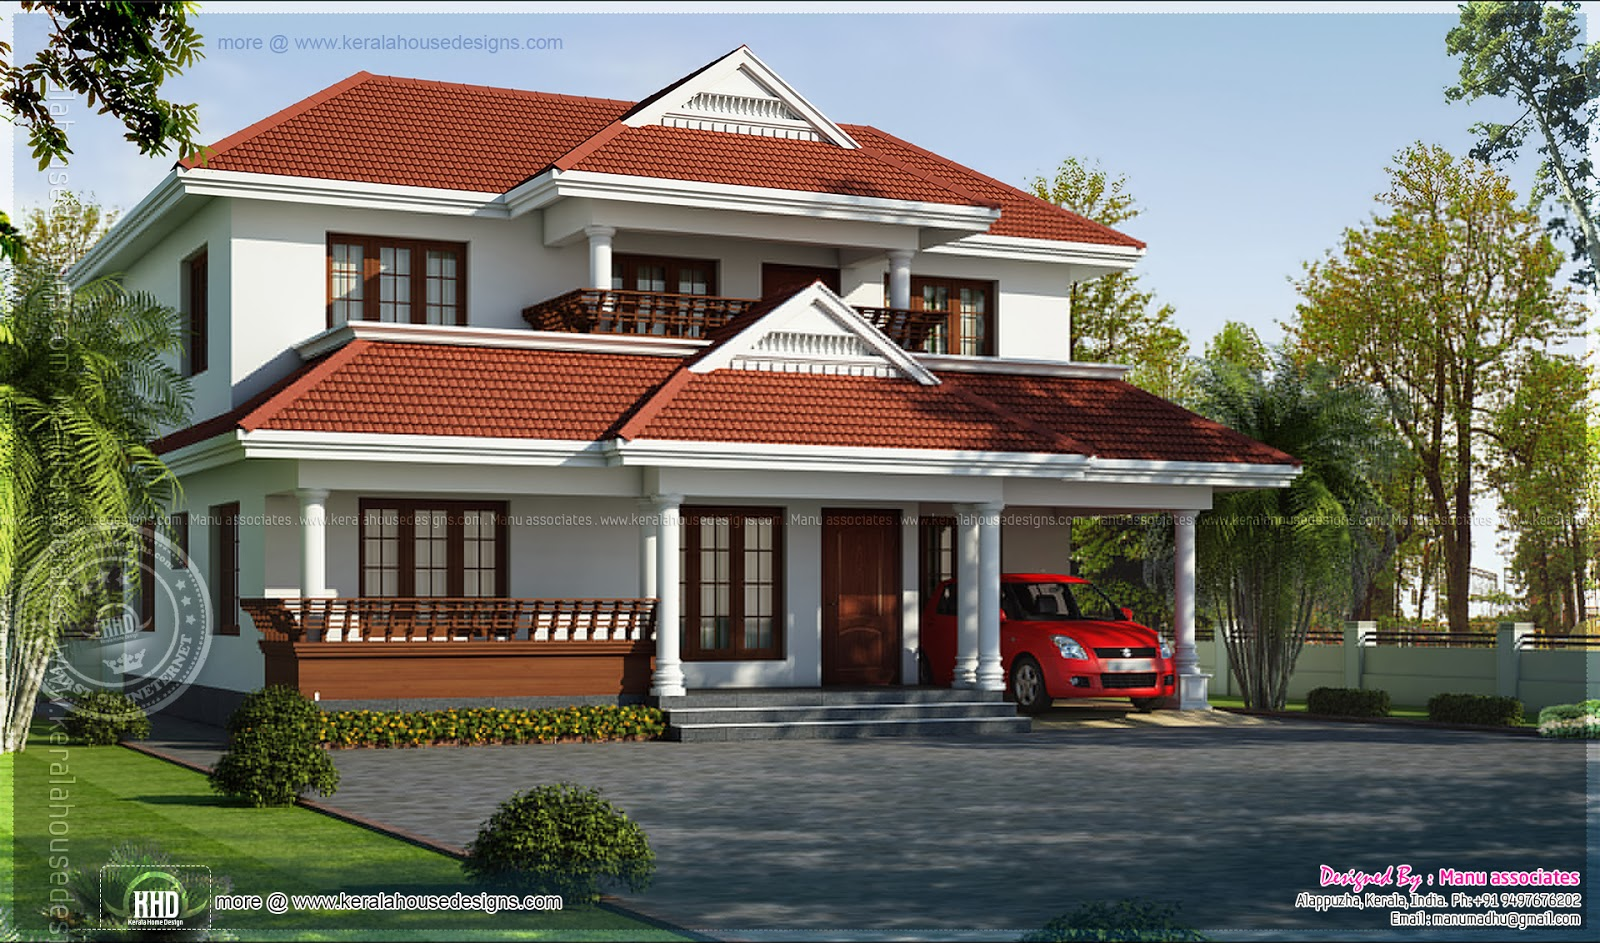 4 bedroom kerala model house in 2020 square feet indian for Model house photos in indian